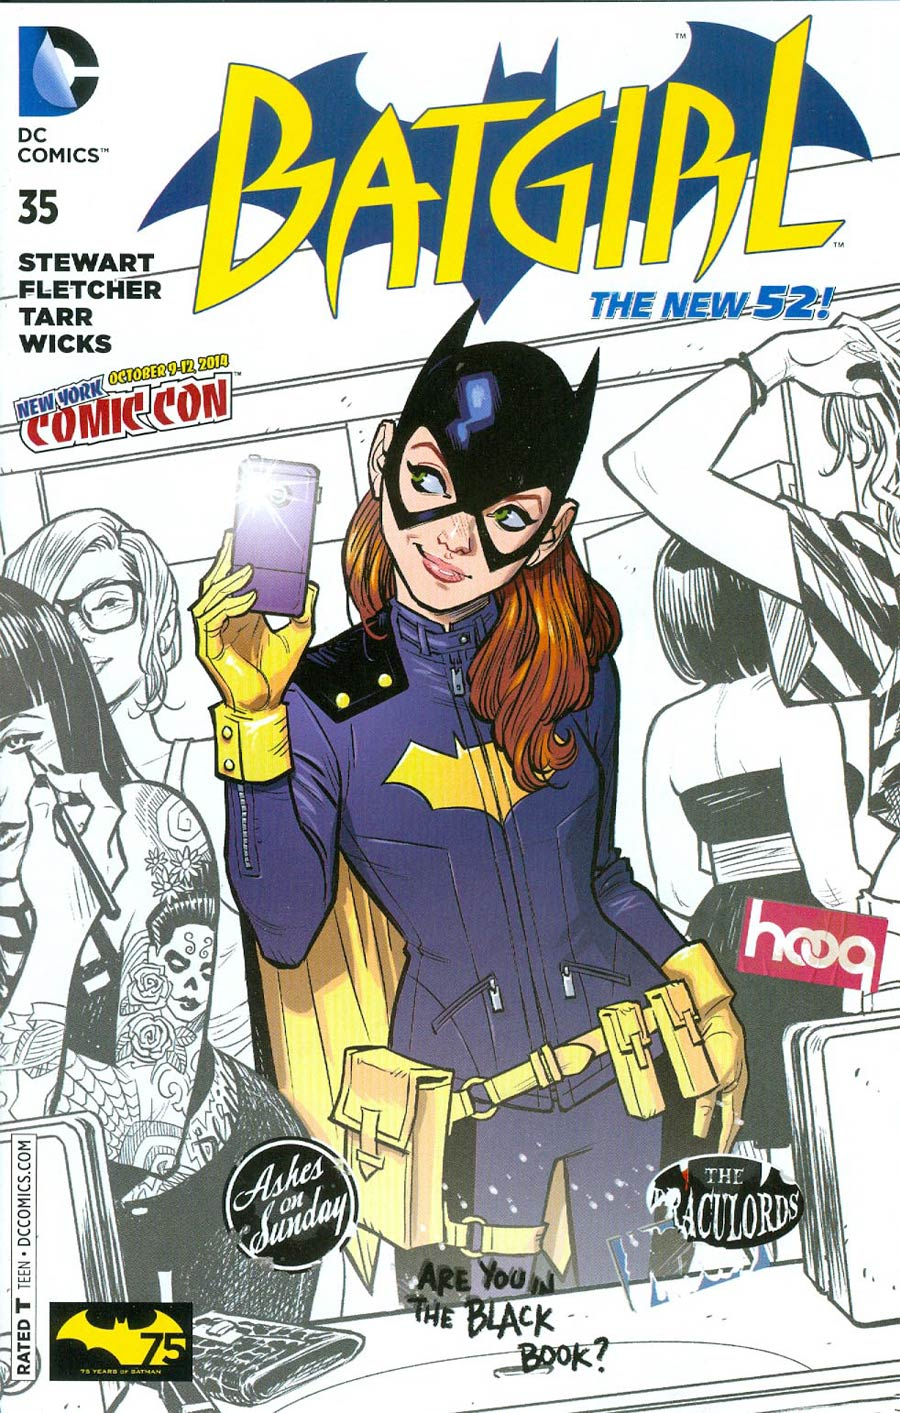 Batgirl Vol 4 #35 Cover E NYCC 2014 Exclusive Cameron Stewart Variant Cover